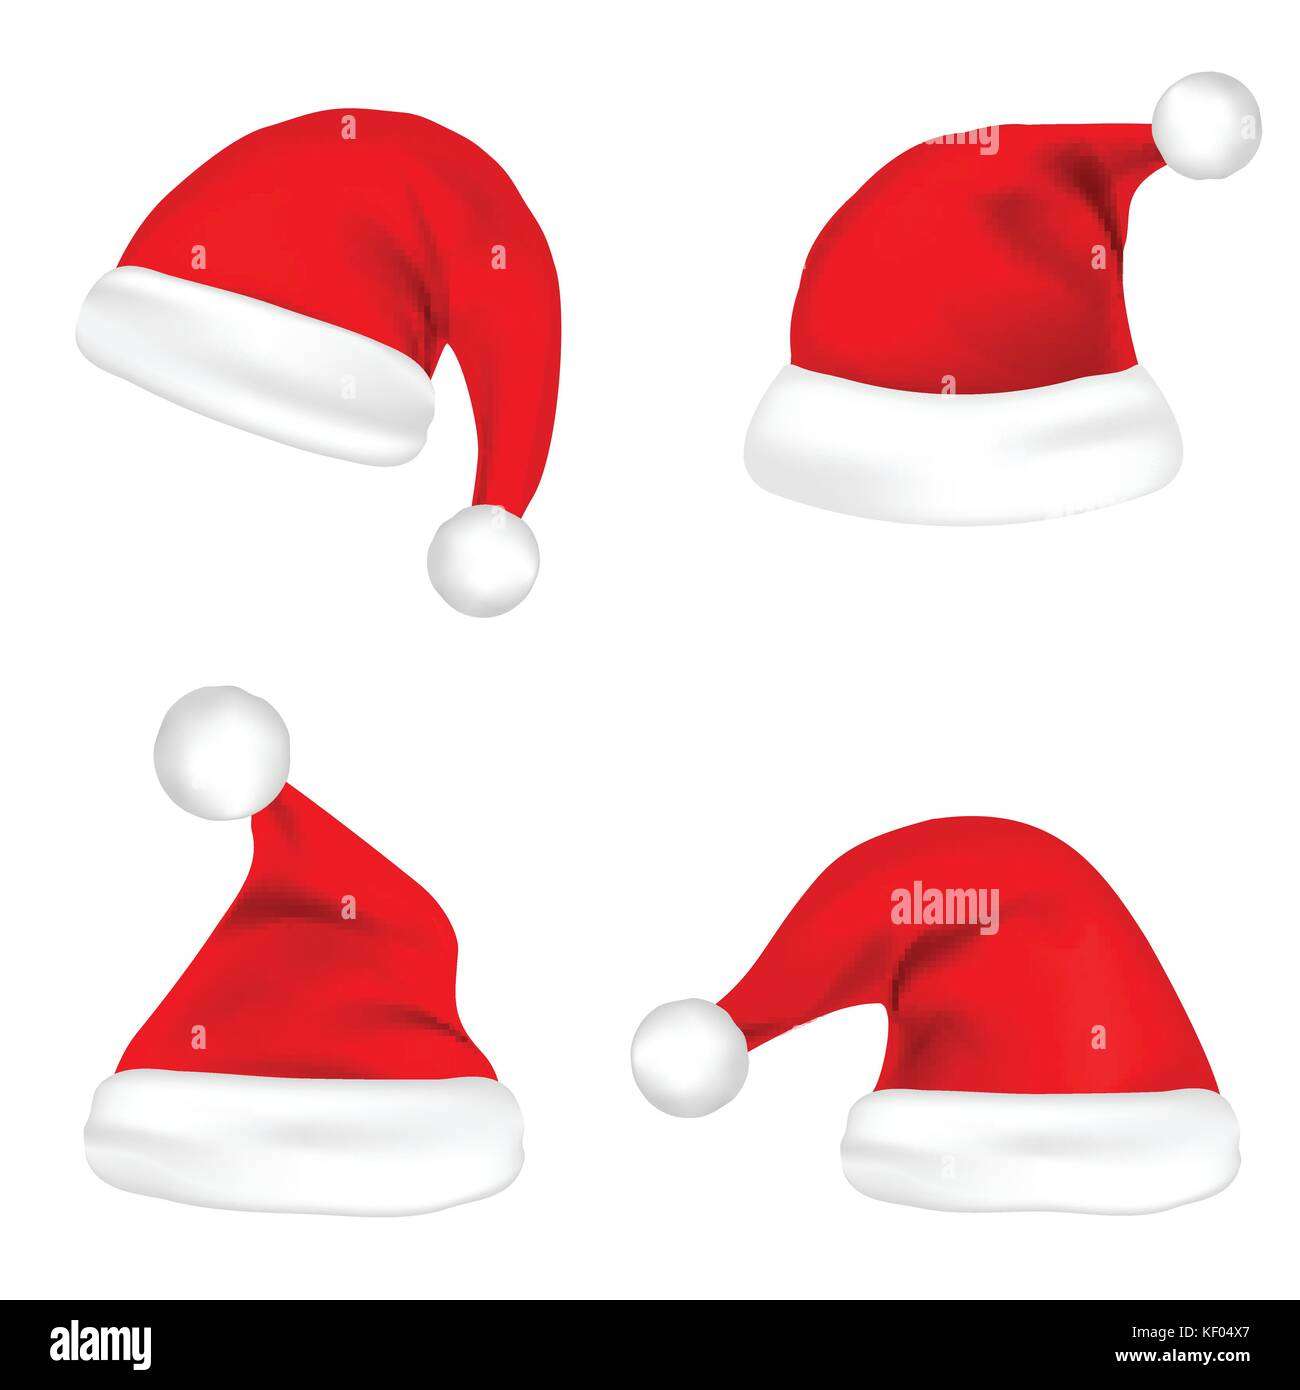 Christmas Santa Claus Hats Set. New Year Red Hat Isolated on White  Background. Vector illustration. e27218d8bd73